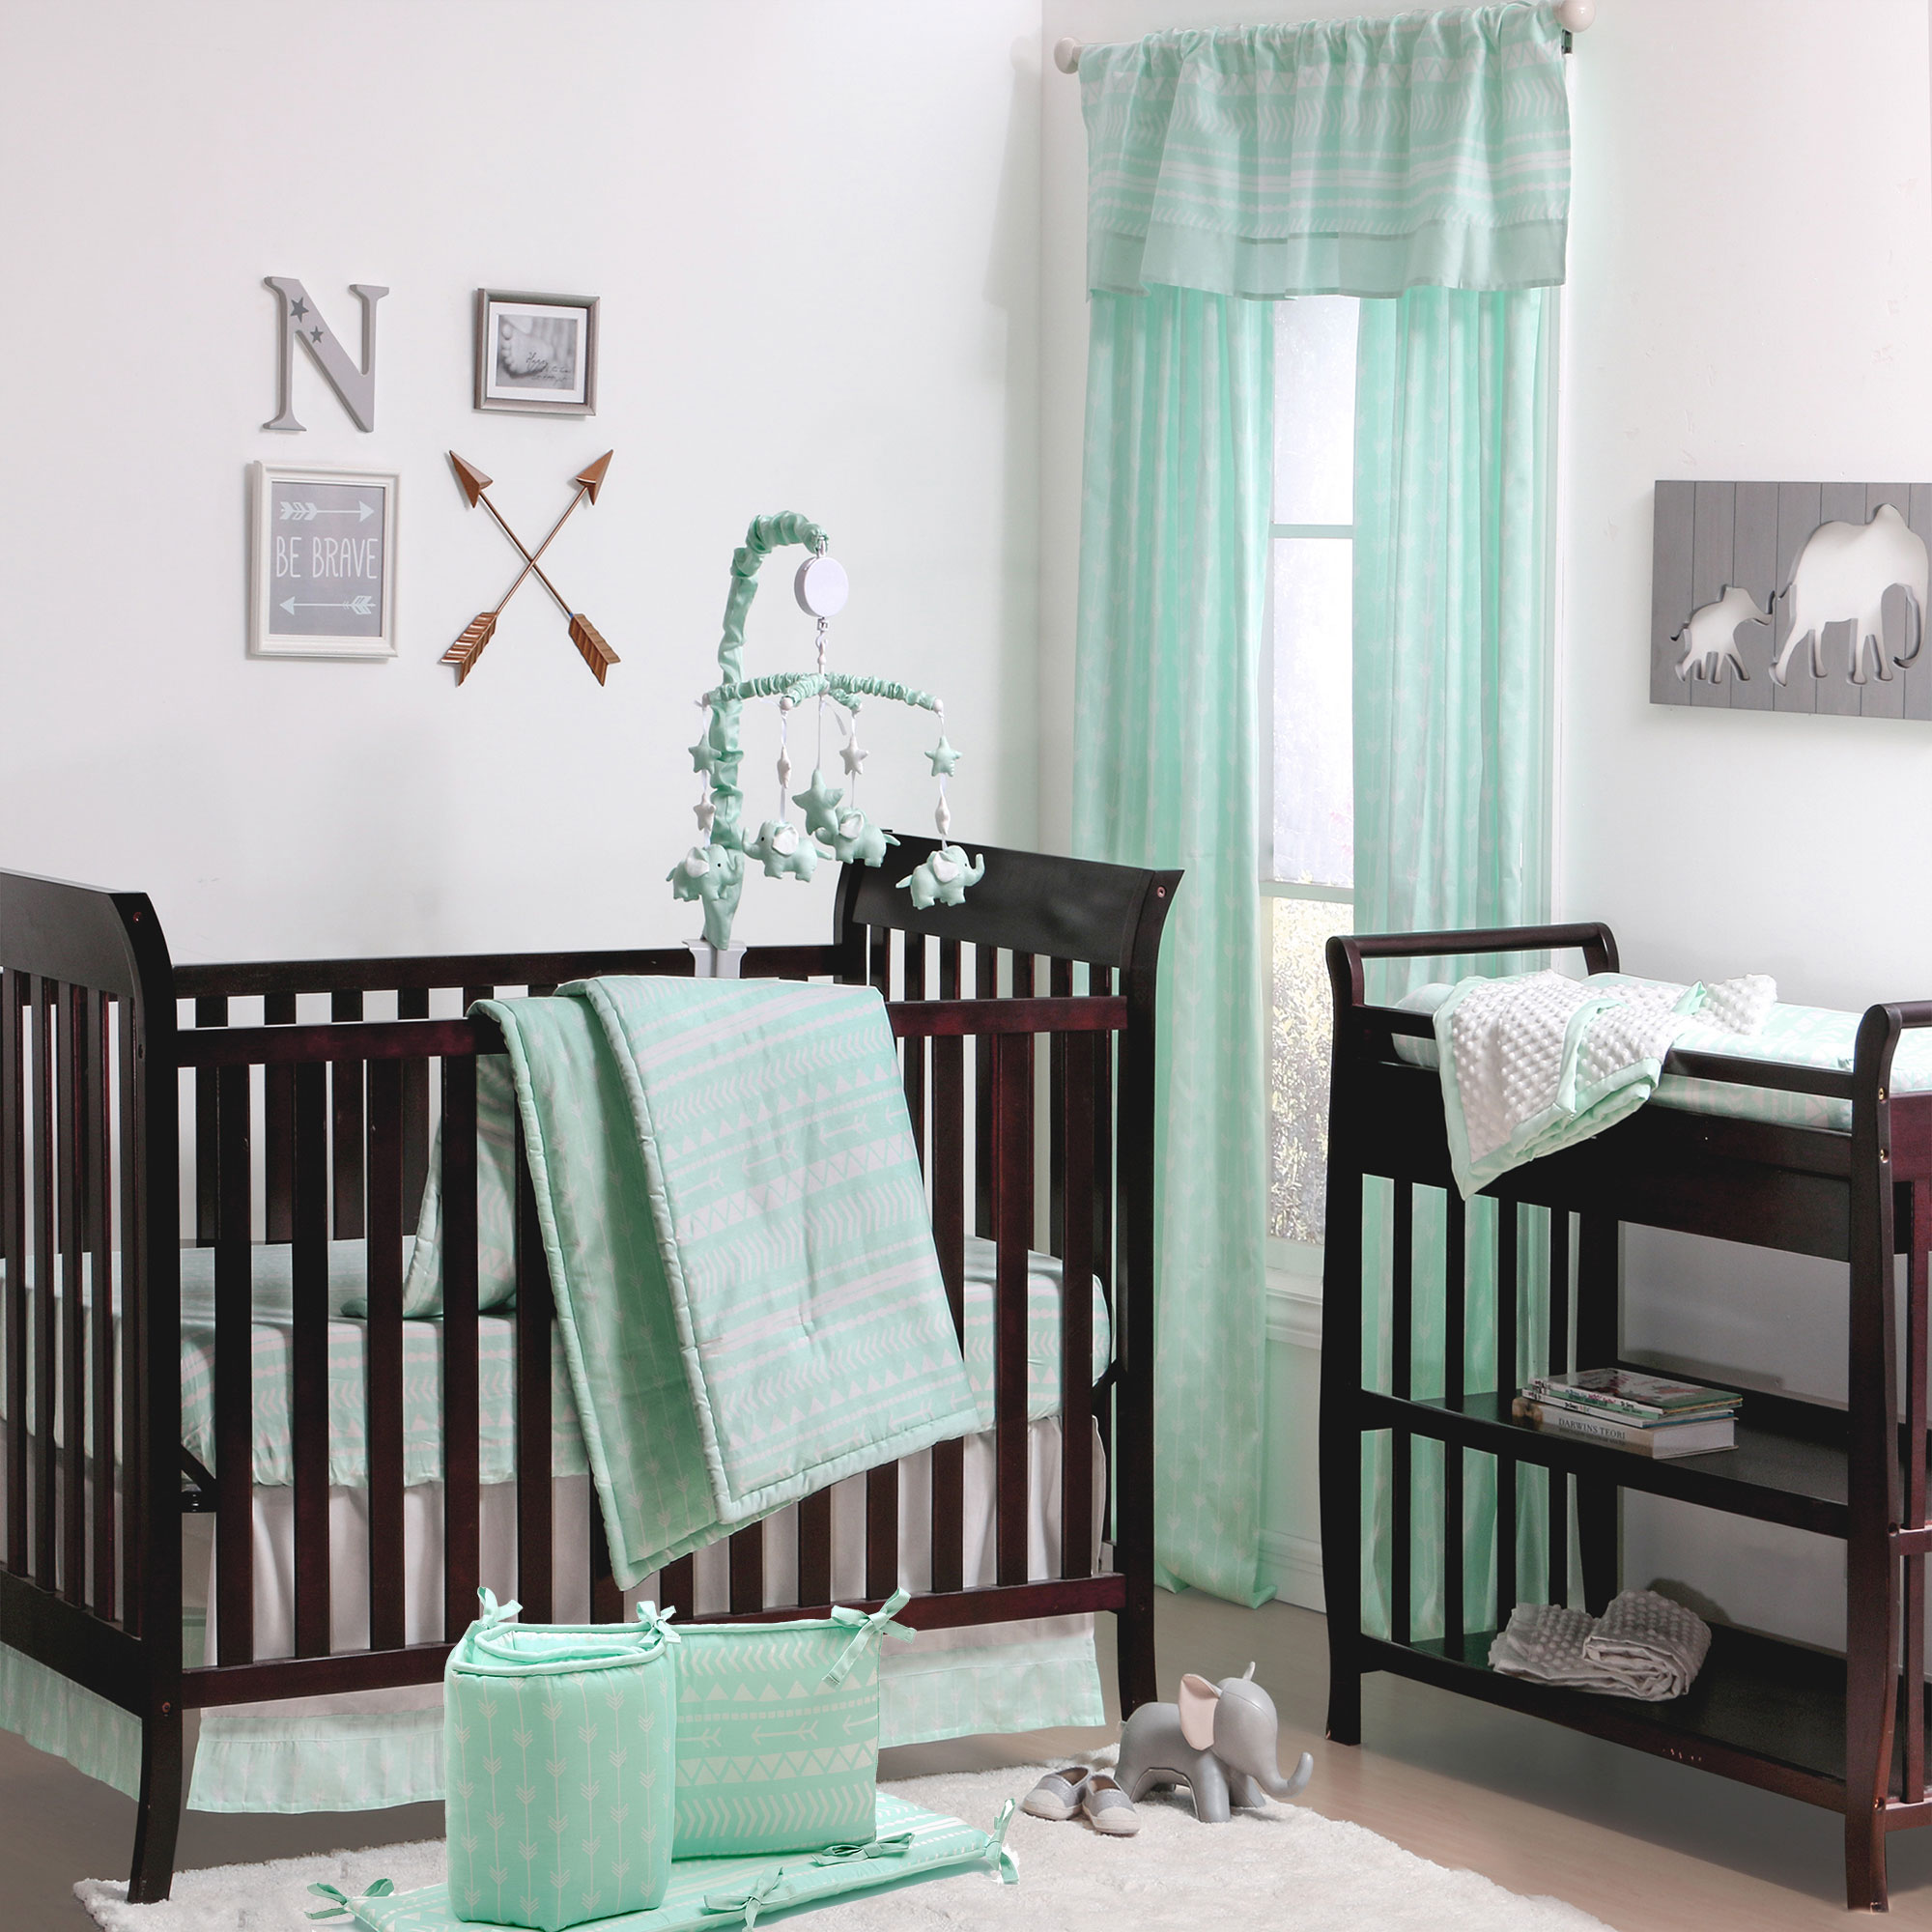 The Peanut Shell 5 Piece Baby Crib Bedding Set - Mint Green Native American Tribal Geometric Design - 100% Cotton Quilt, Bumper, Dust Ruffle, Fitted Sheet, and Mobile